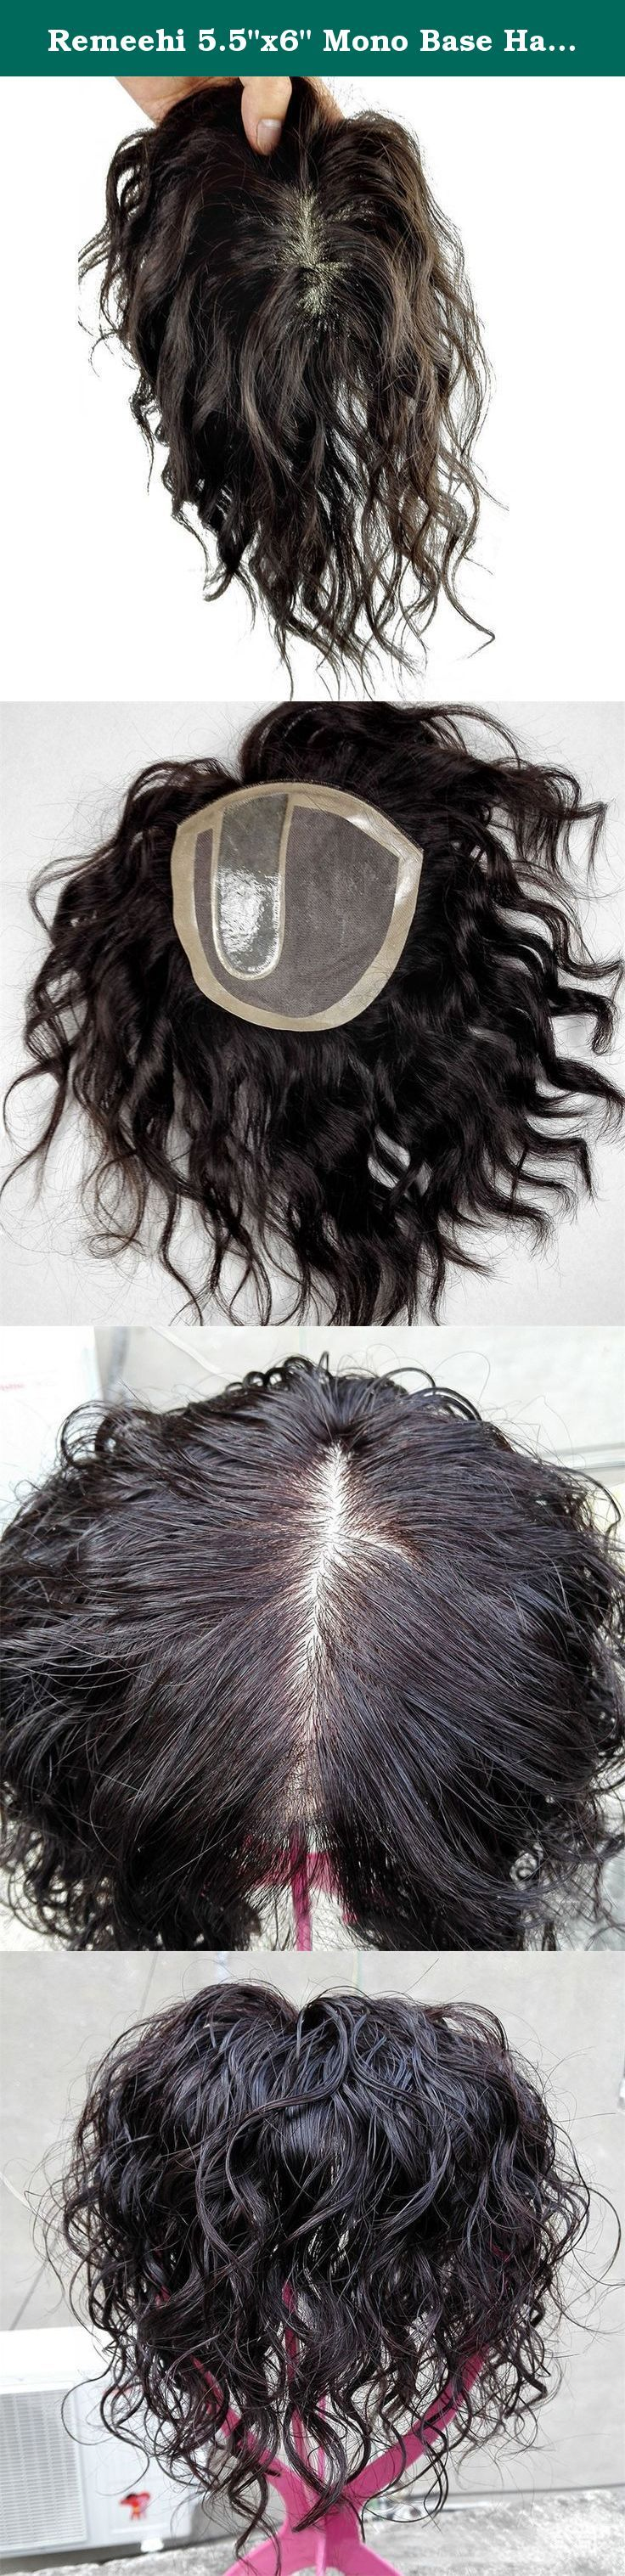 """Remeehi 5.5""""x6"""" Mono Base Hand Made Tied Human Hair Hair Topper Natural Curly Hair Top Piece Natural Black (25cm/9.8inch). Hair type:Remy Human Hair Texture: natural curly If you have any other question, please feel free to contact us. ."""